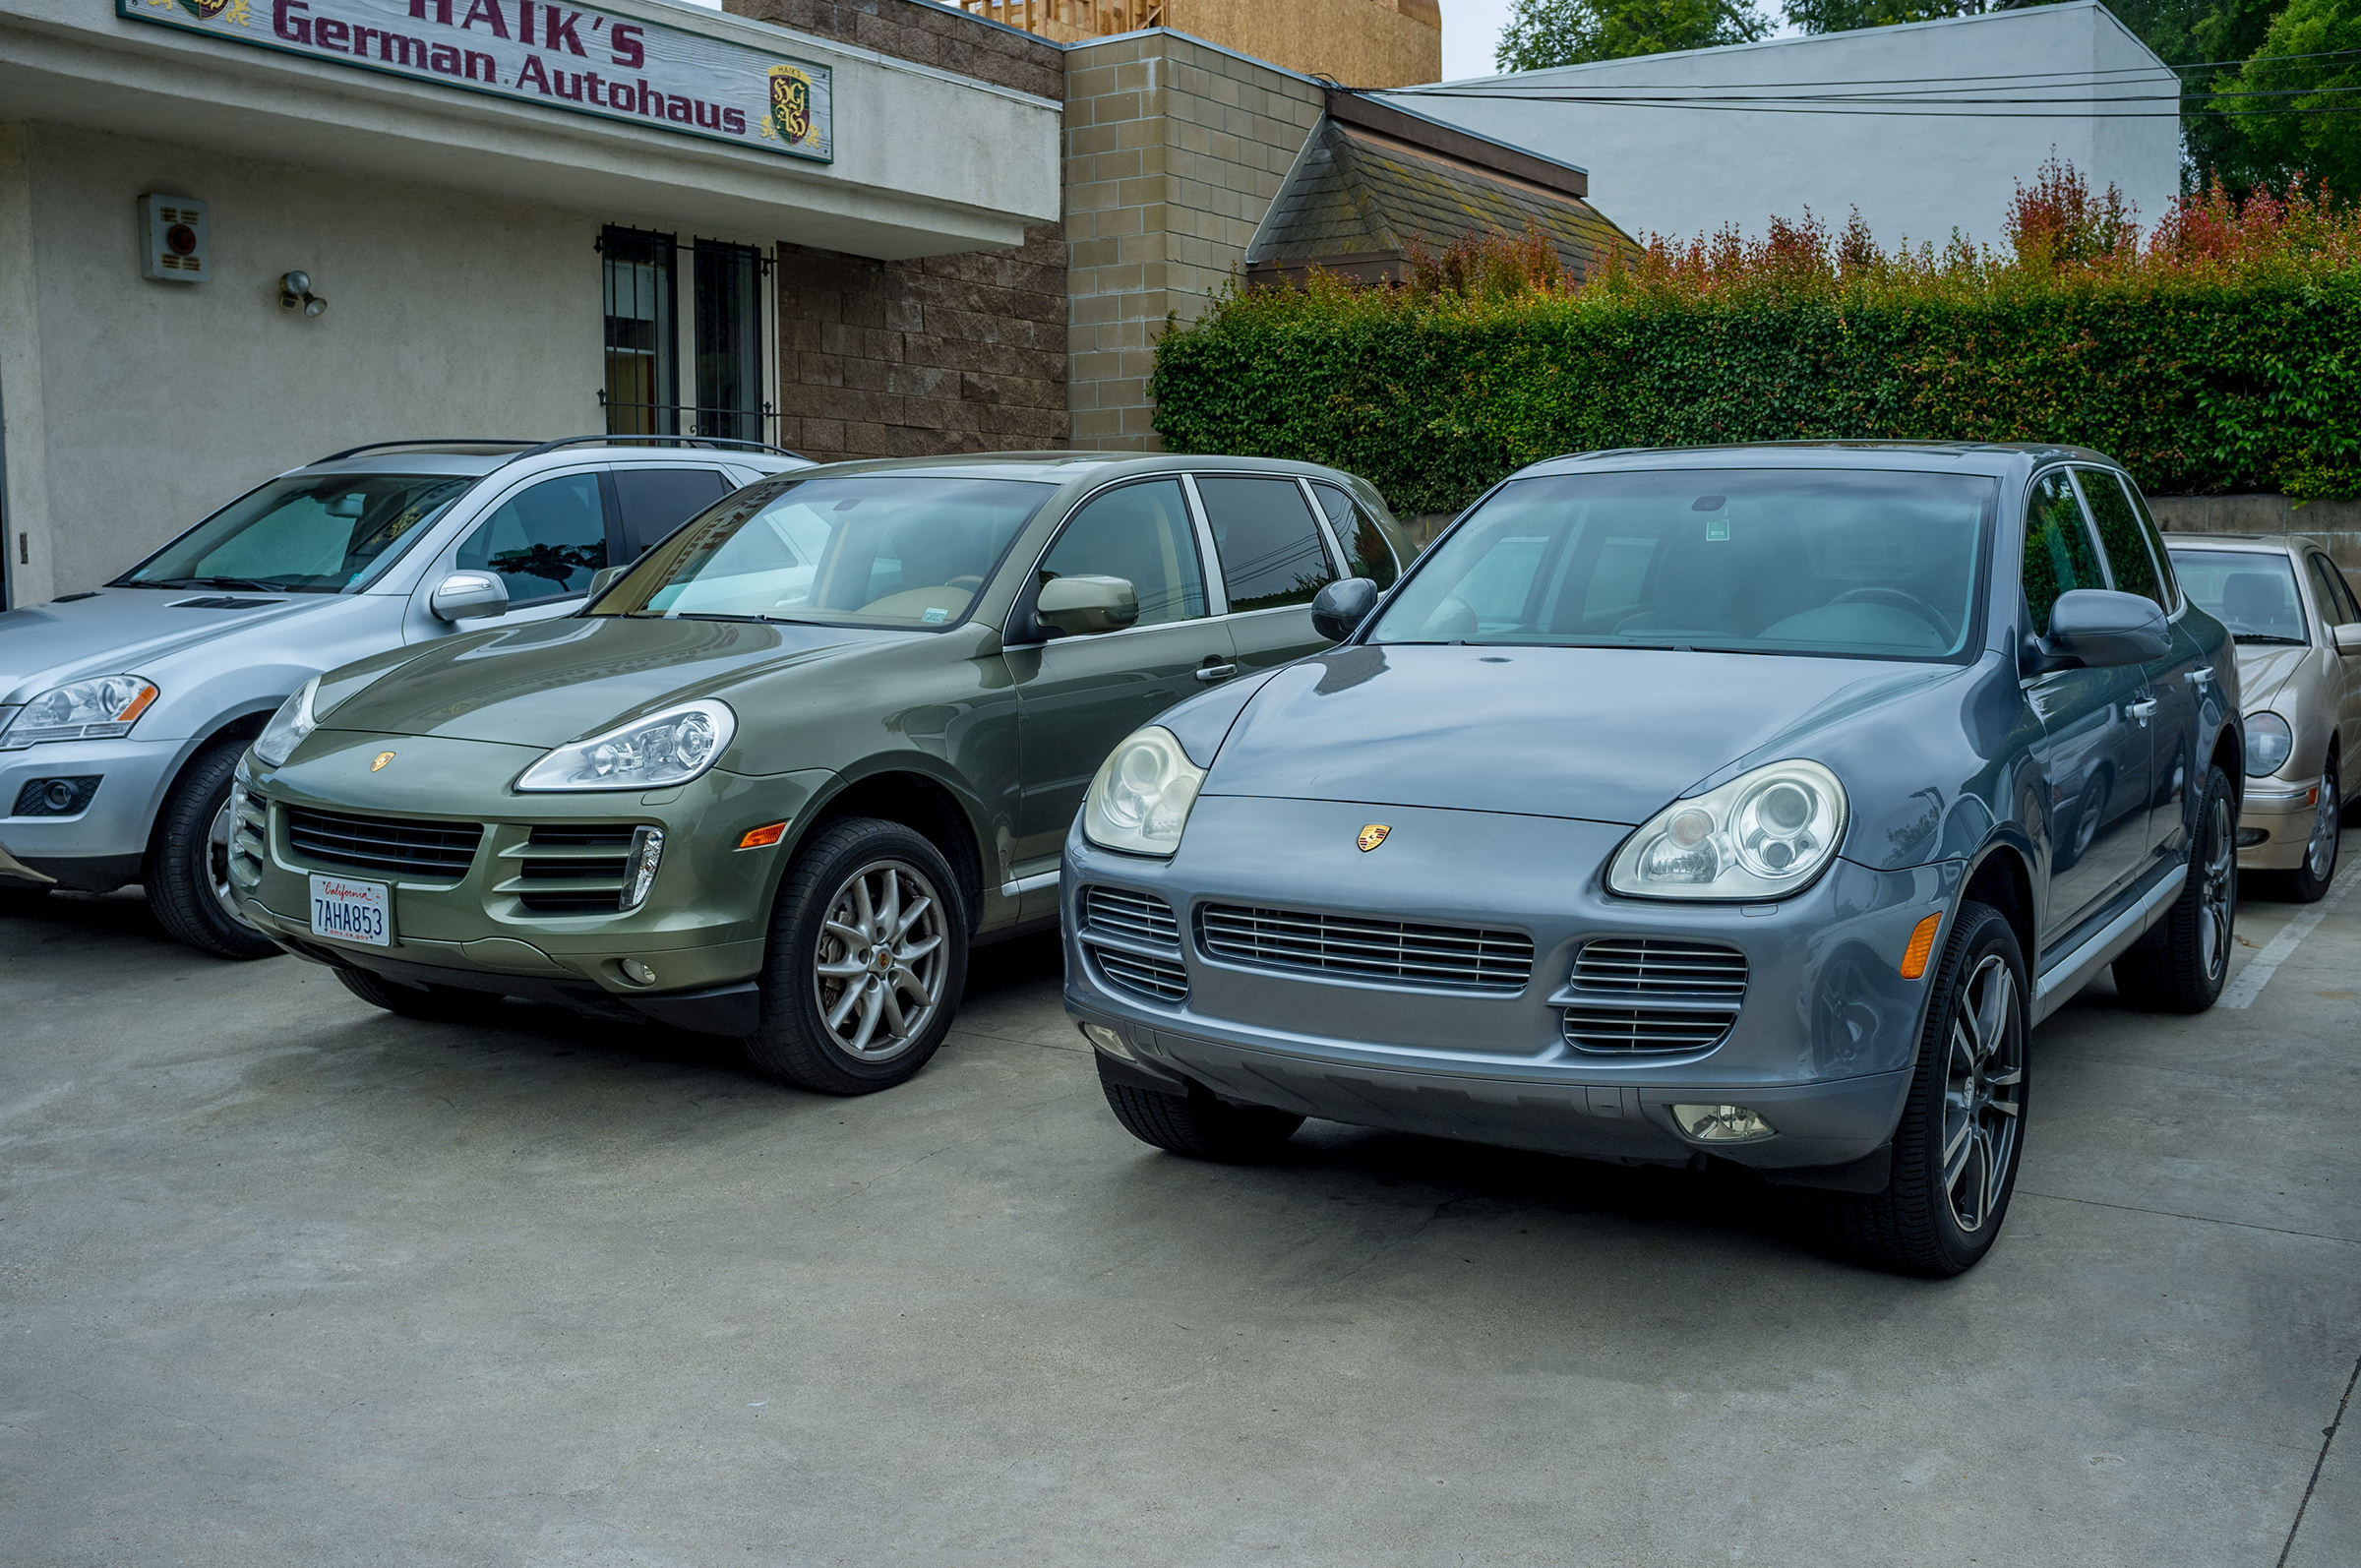 View Porsches Auto Repair at Haik's German Autohaus